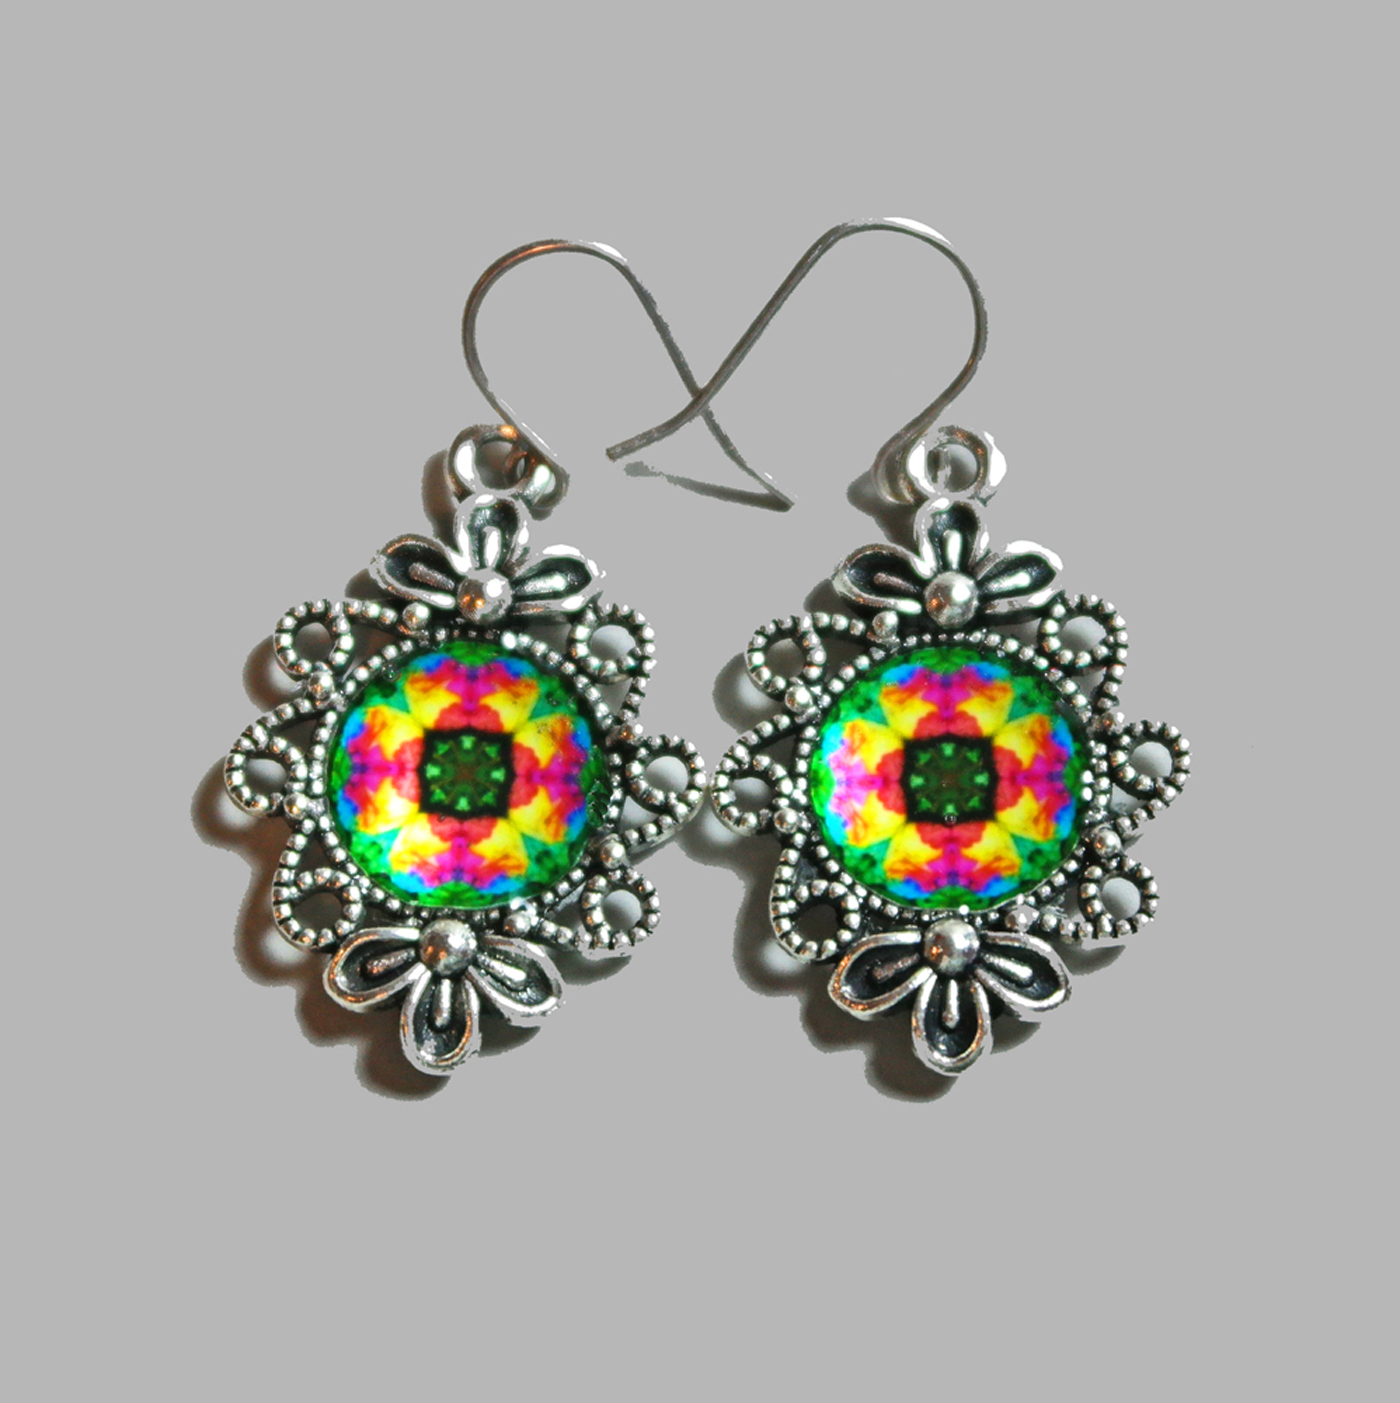 Rainbow Rose Mandala Earrings Flower Bezel Boho Chic Sacred Geometry Hippie Kaleidoscope Gypsy New Age Unique Gift For Her Ornate Opus